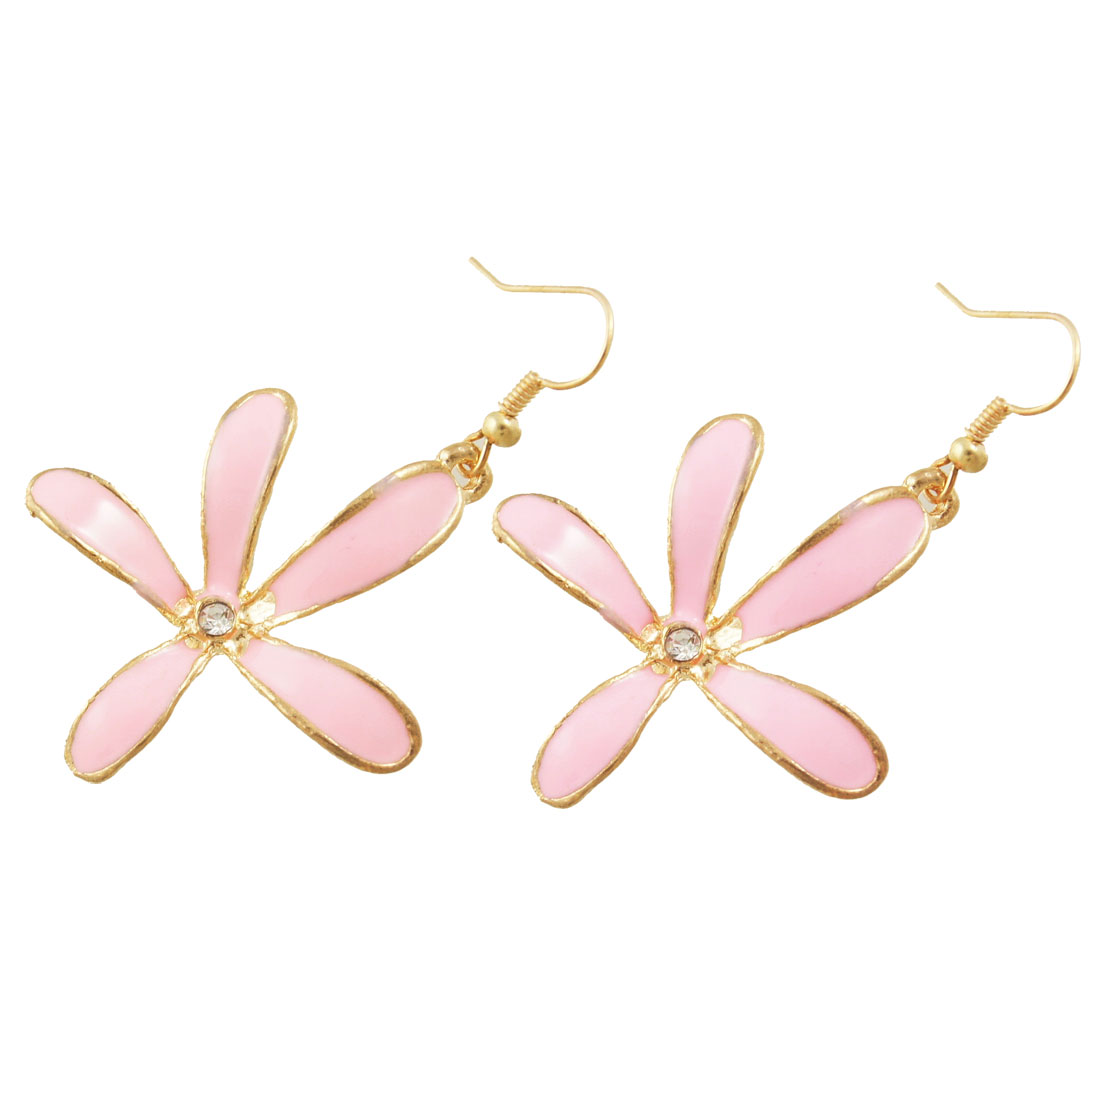 Pink Five Petals Floral Eardrop Gold Tone Fish Hook Earrings Gift for Woman